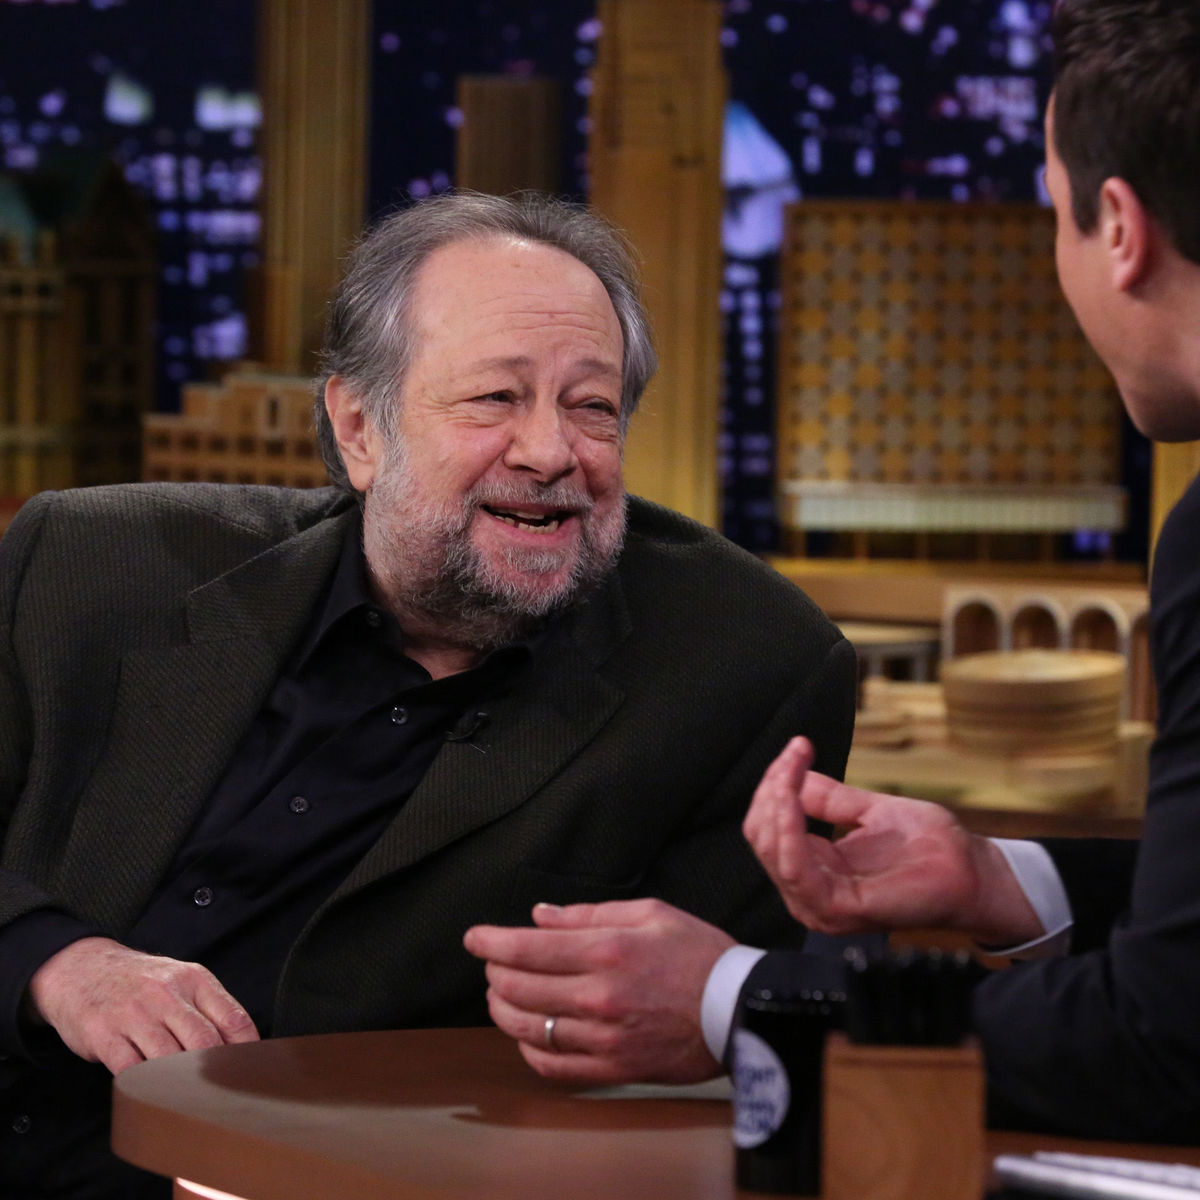 Magician, Actor Ricky Jay Dies At 72